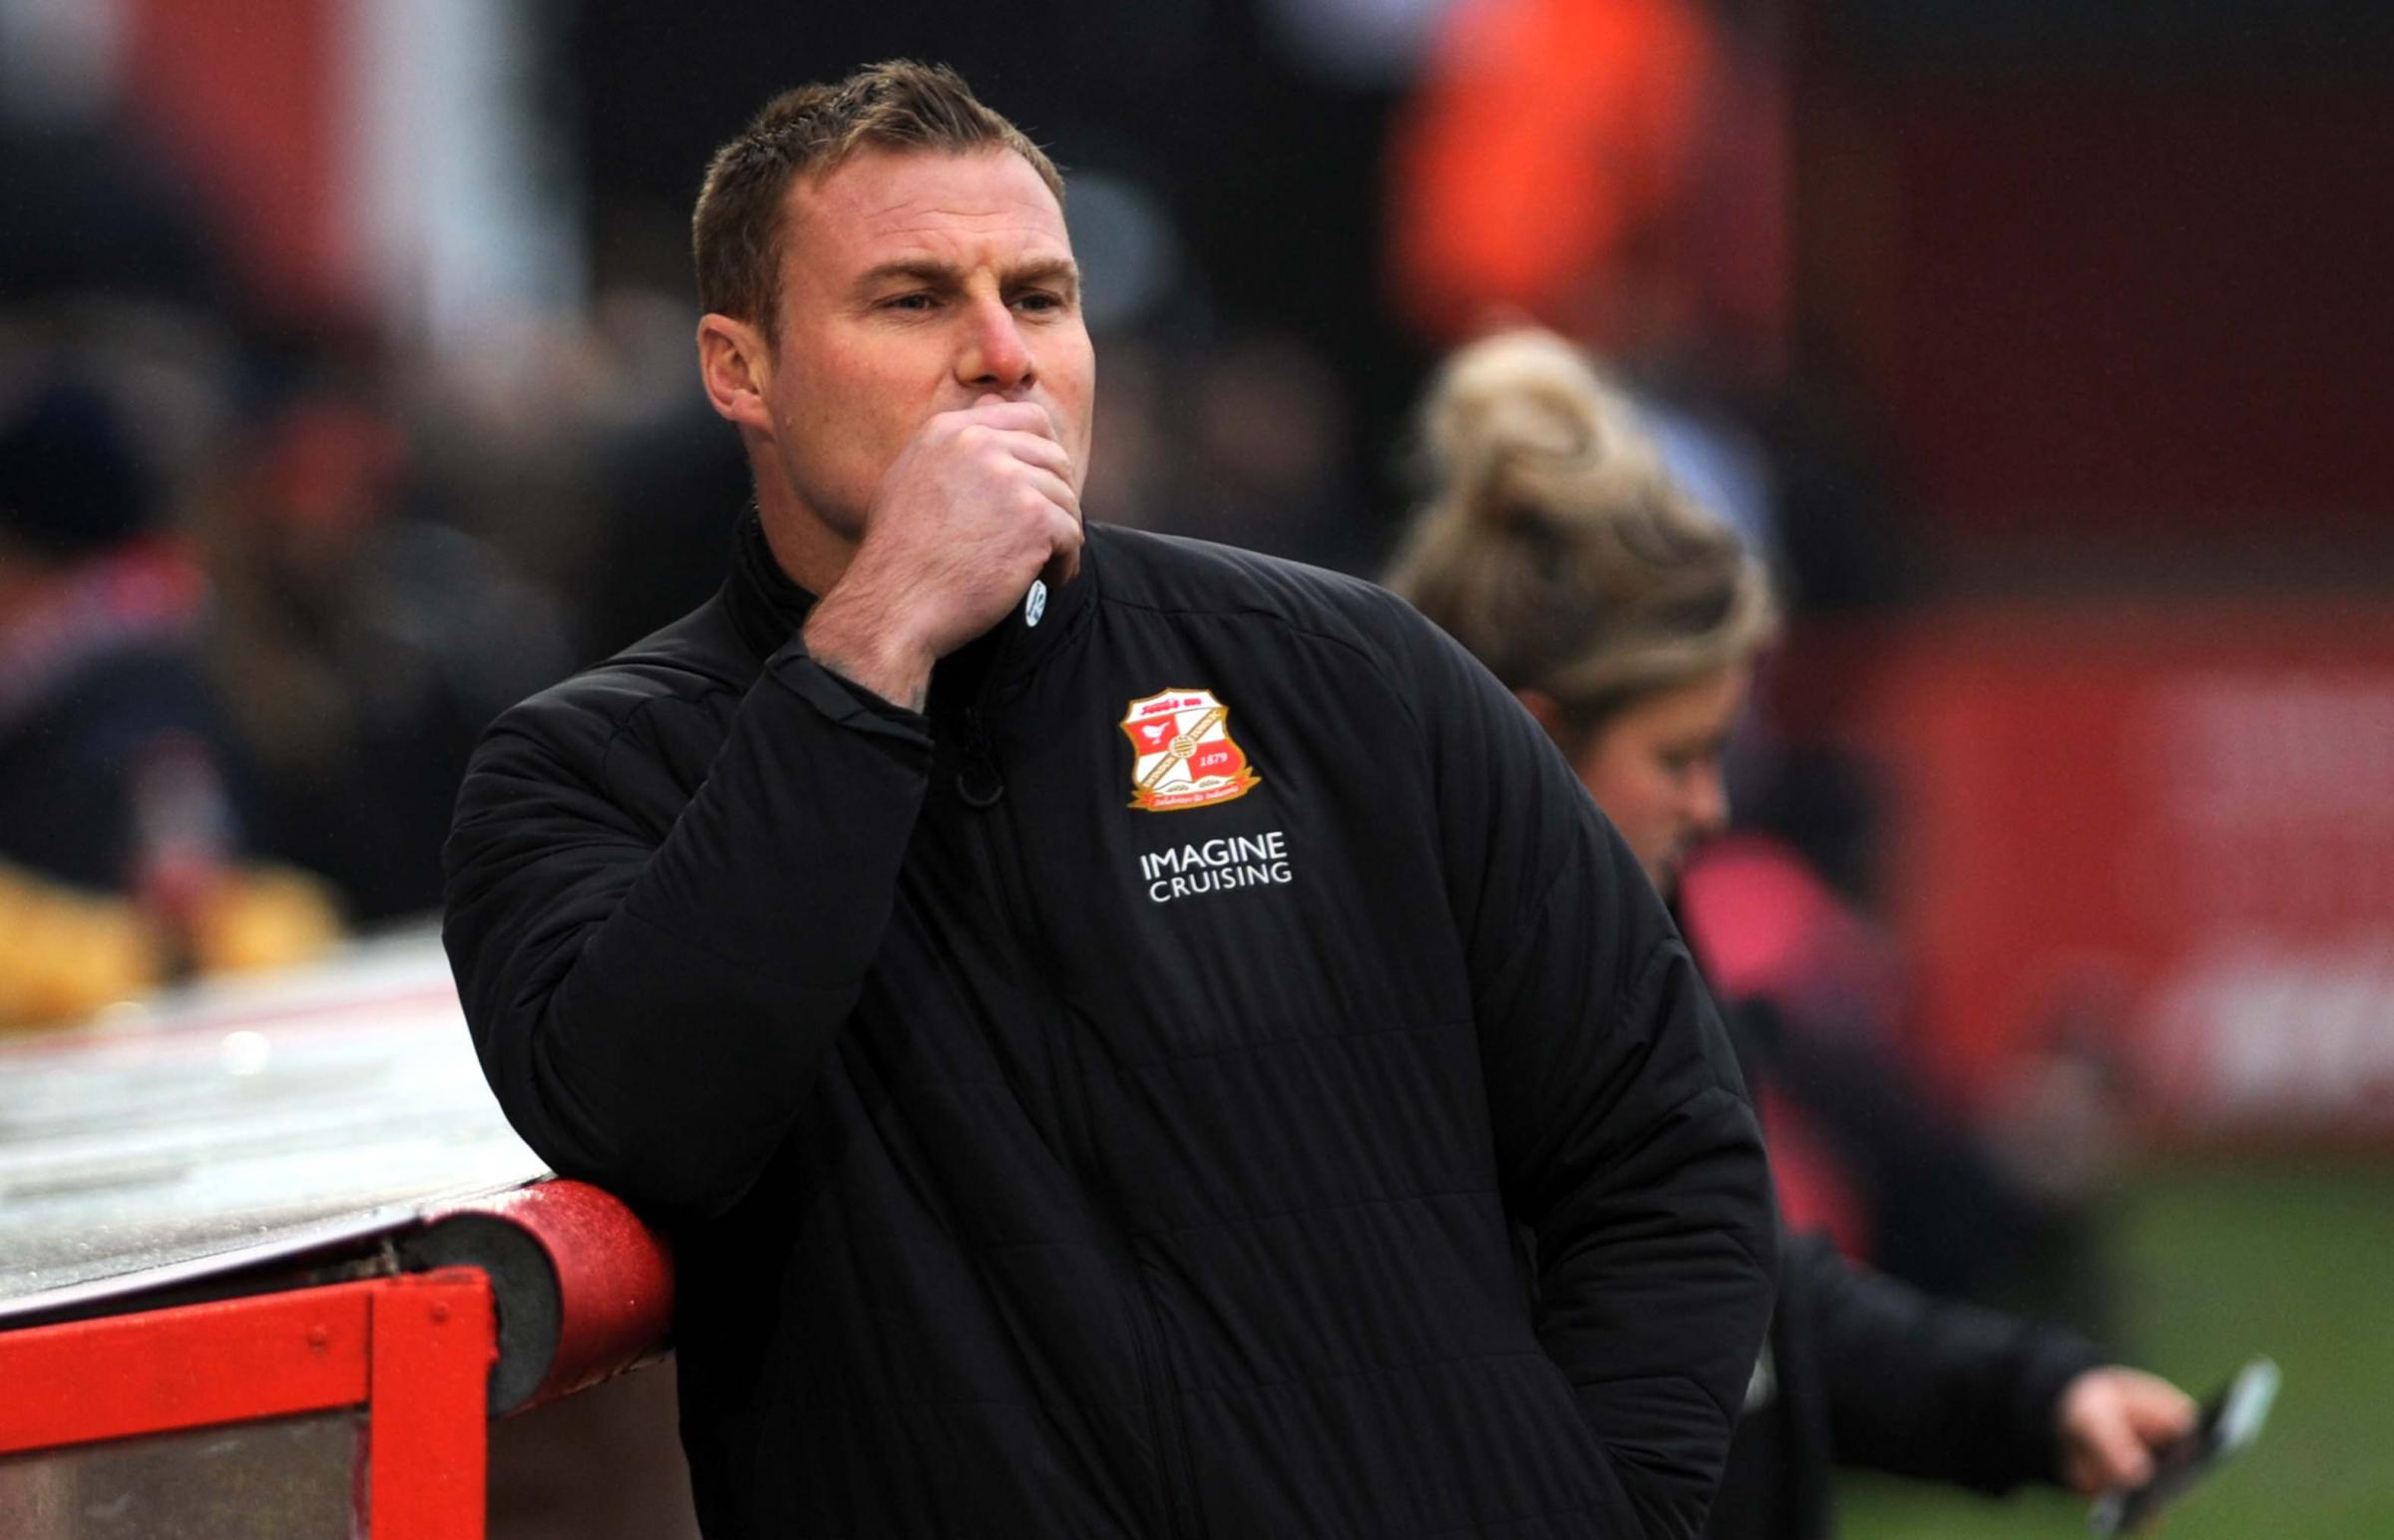 A thoughtful David Flitcroft in the dugout at the Lamex Stadium as Town made their FA Cup exit on Saturday (Picture: DAVE EVANS)